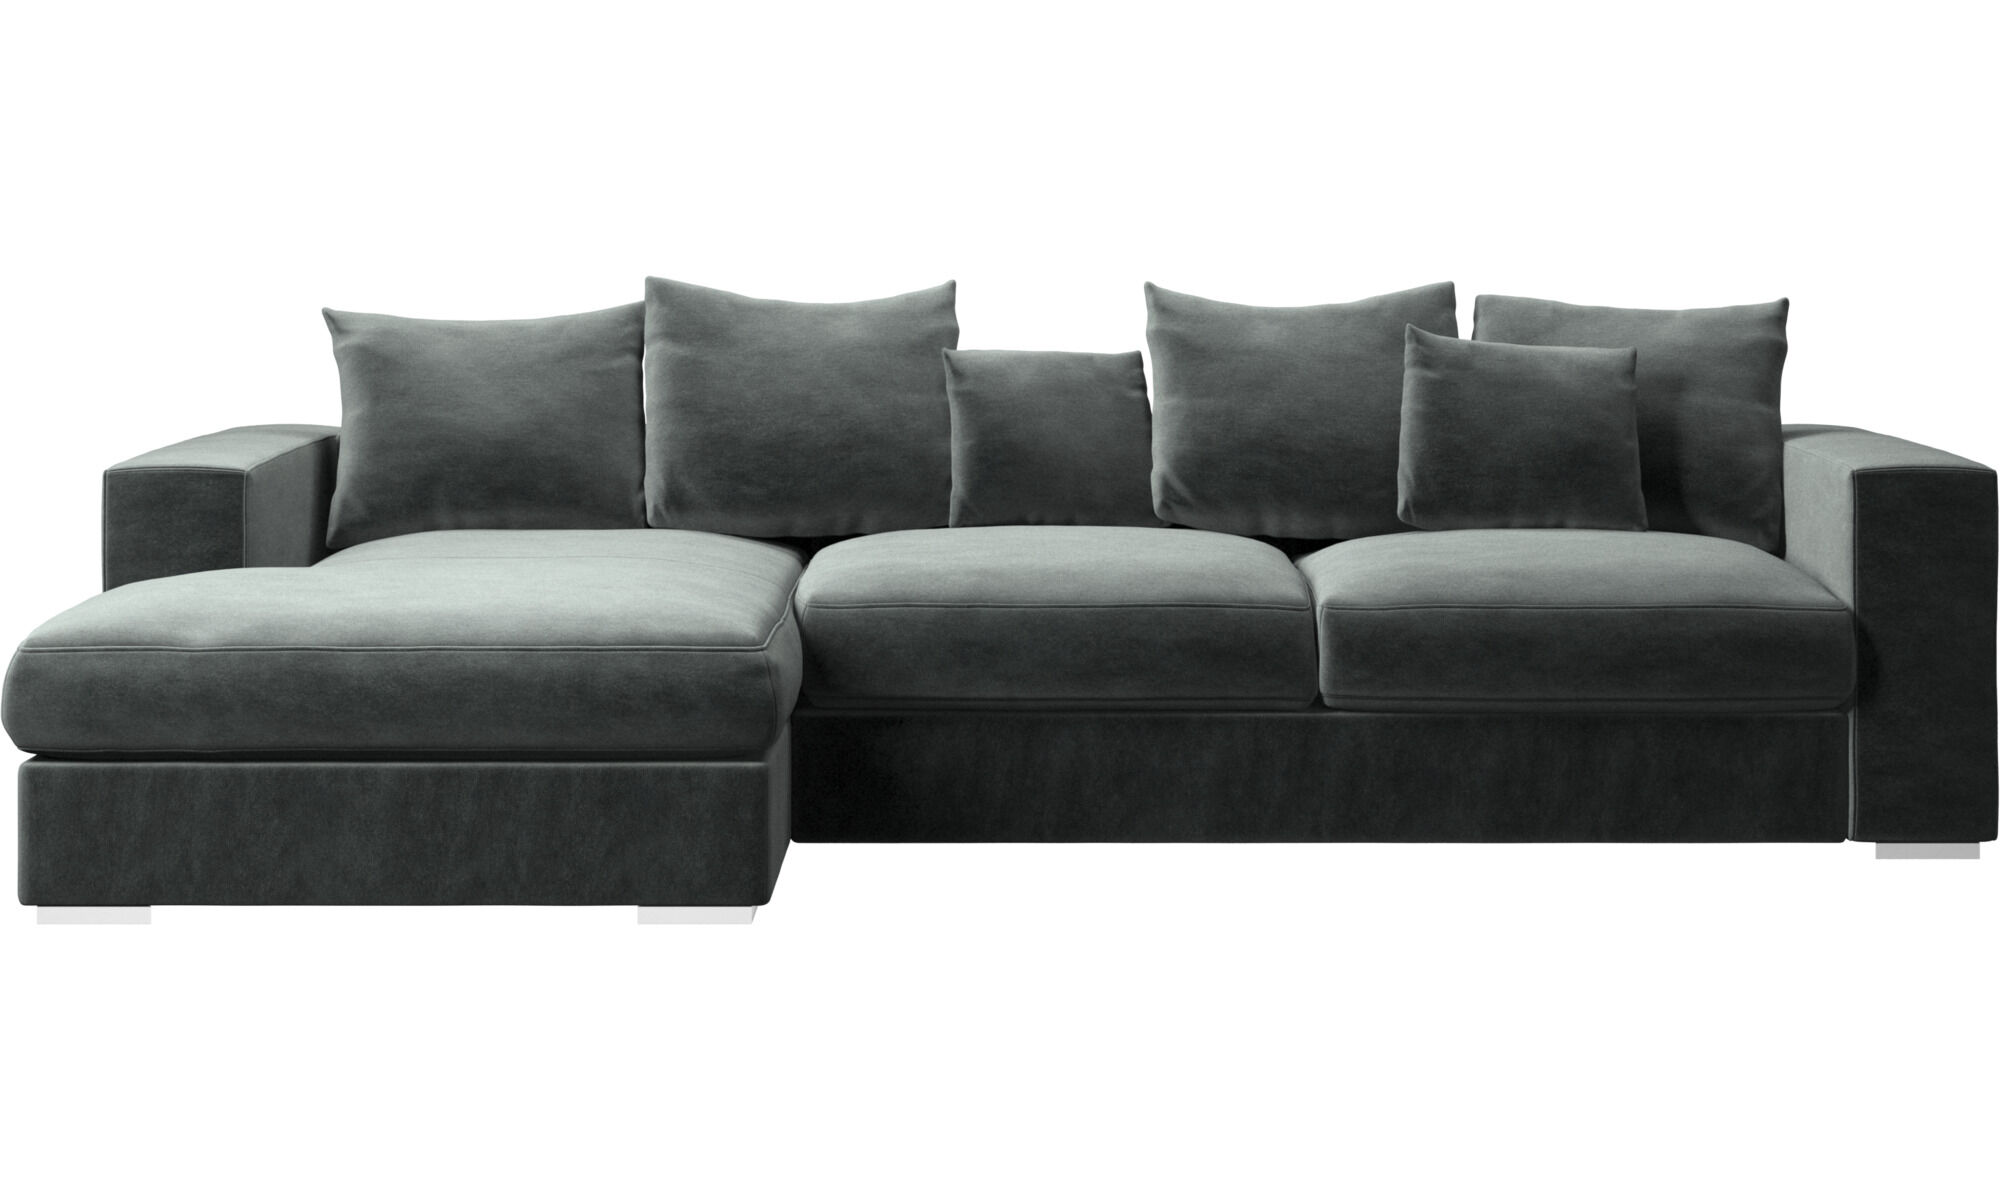 Sofas   Modern Sofas   Lounges   BoConcept Sydney Chaise lounge sofas   Cenova sofa with resting unit   Green   Fabric